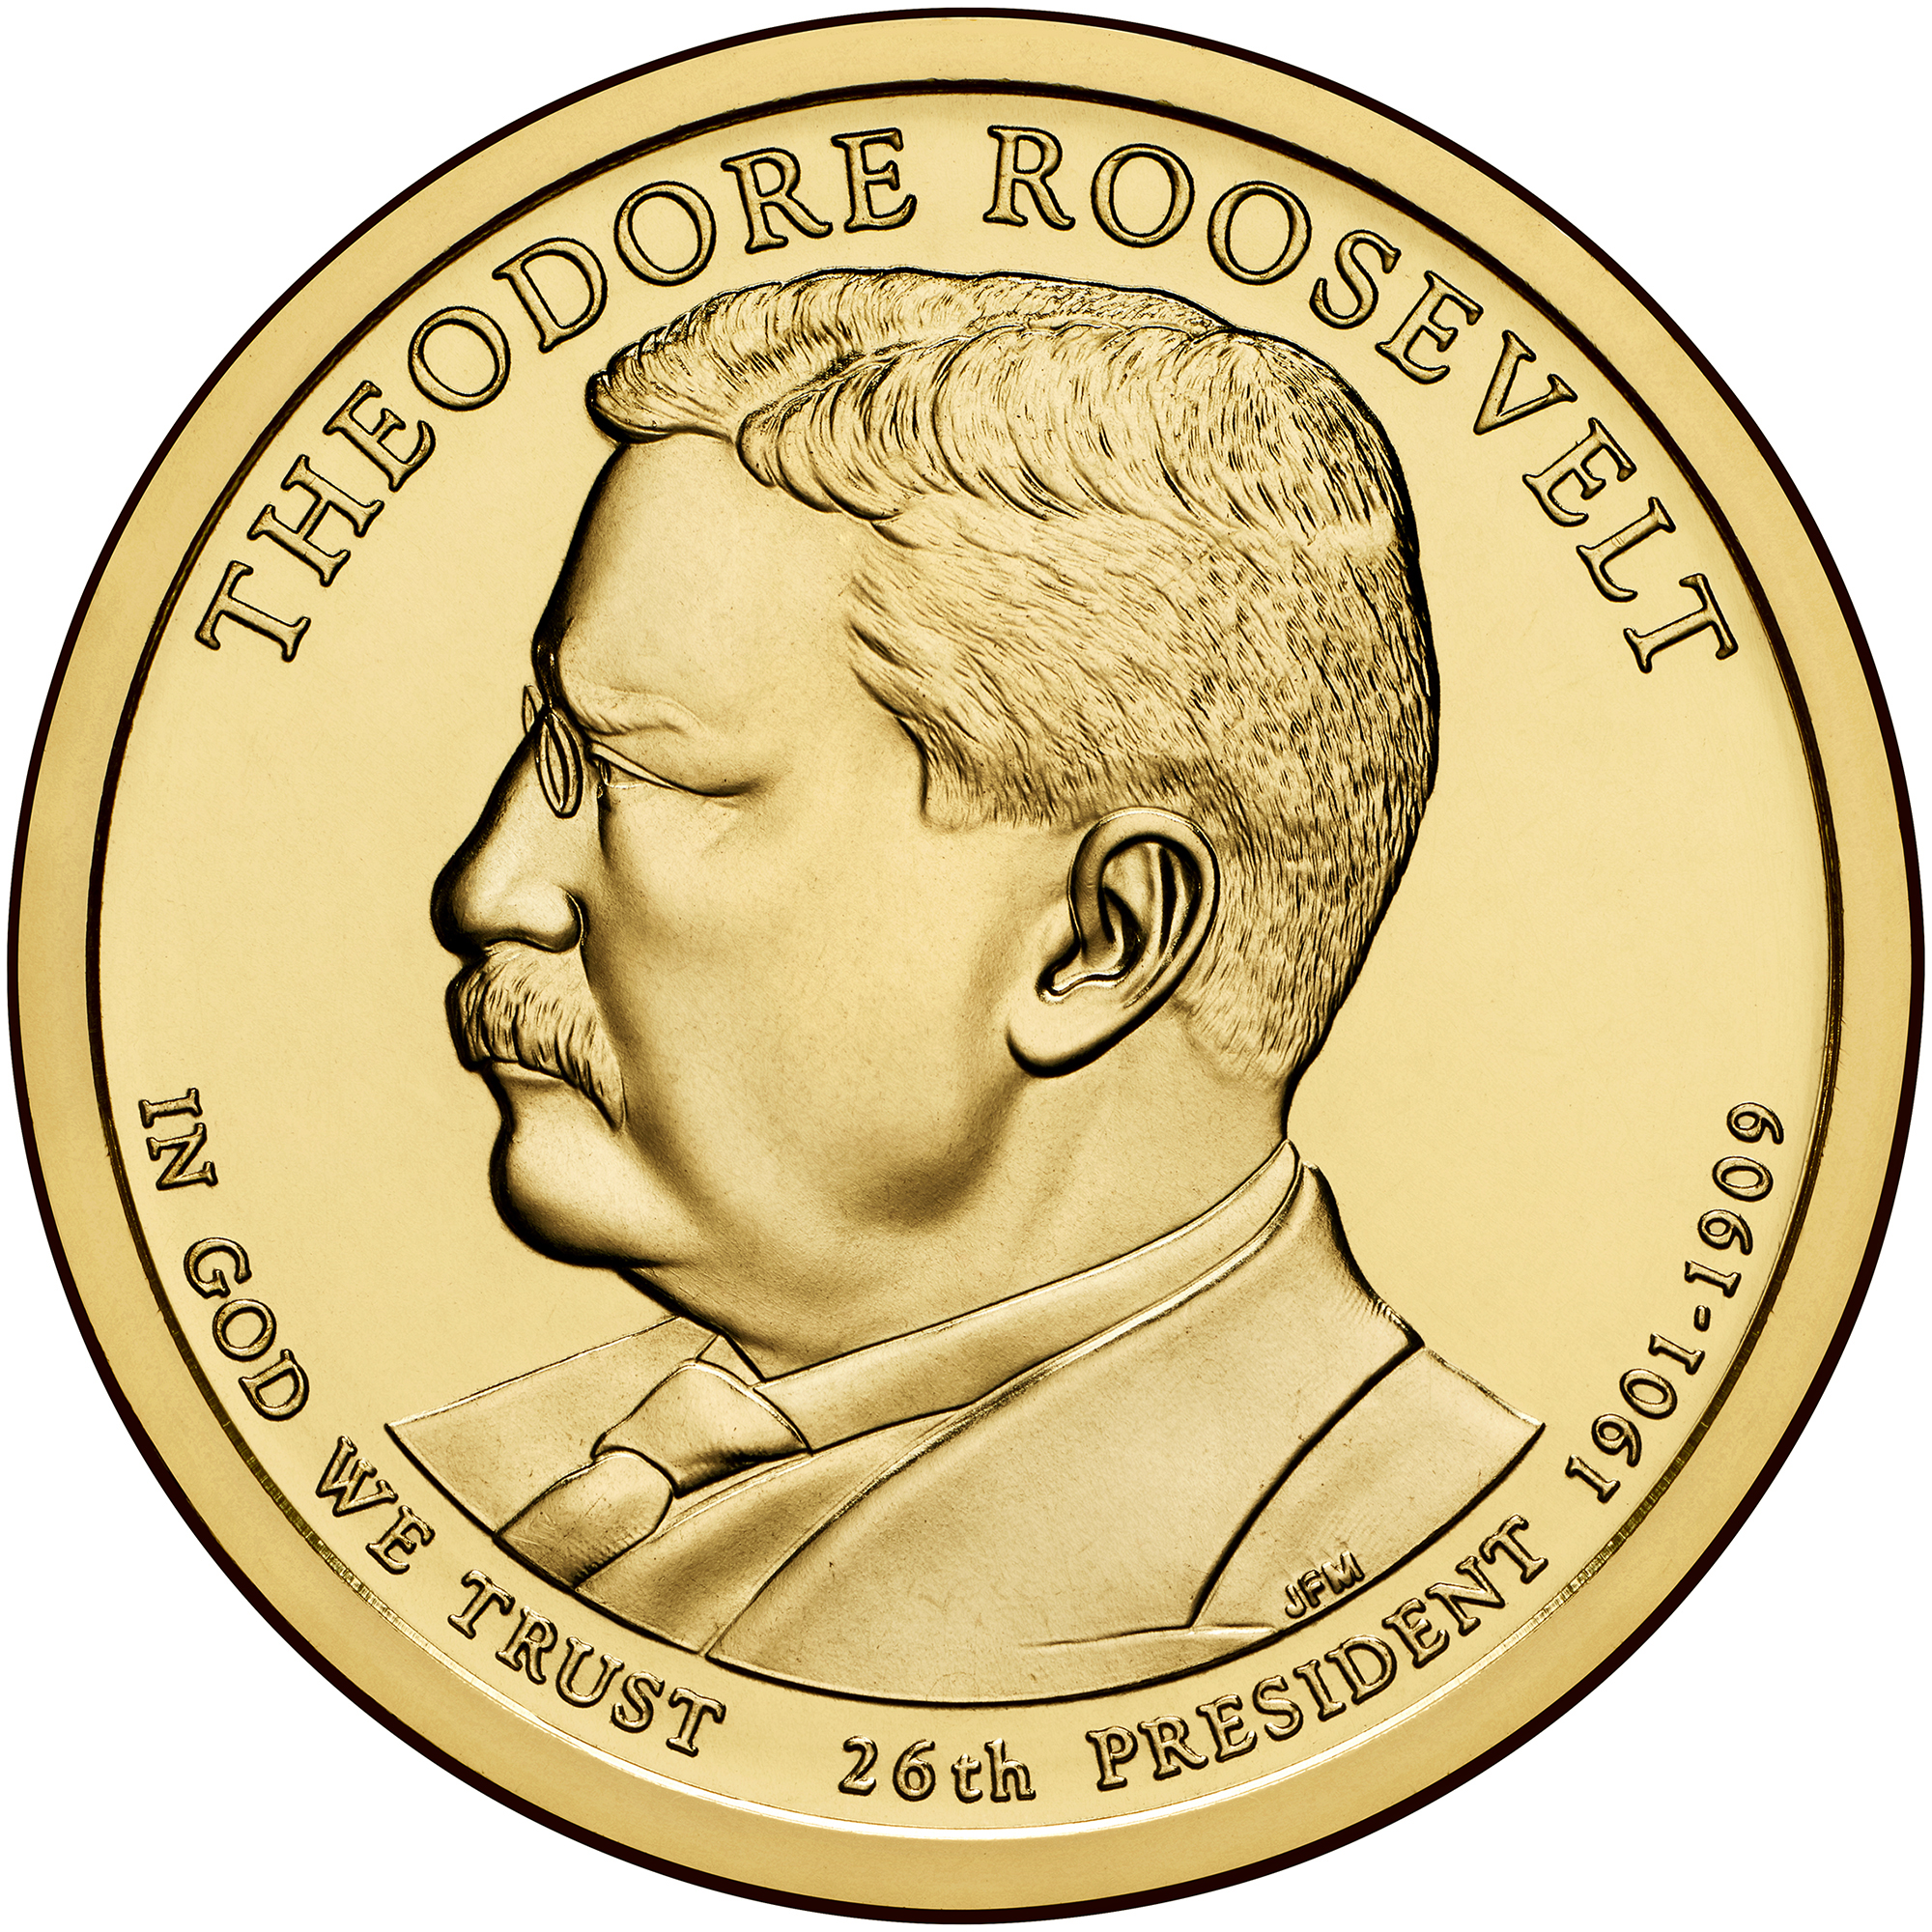 2013 Presidential Dollar Coin Theodore Roosevelt Uncirculated Obverse